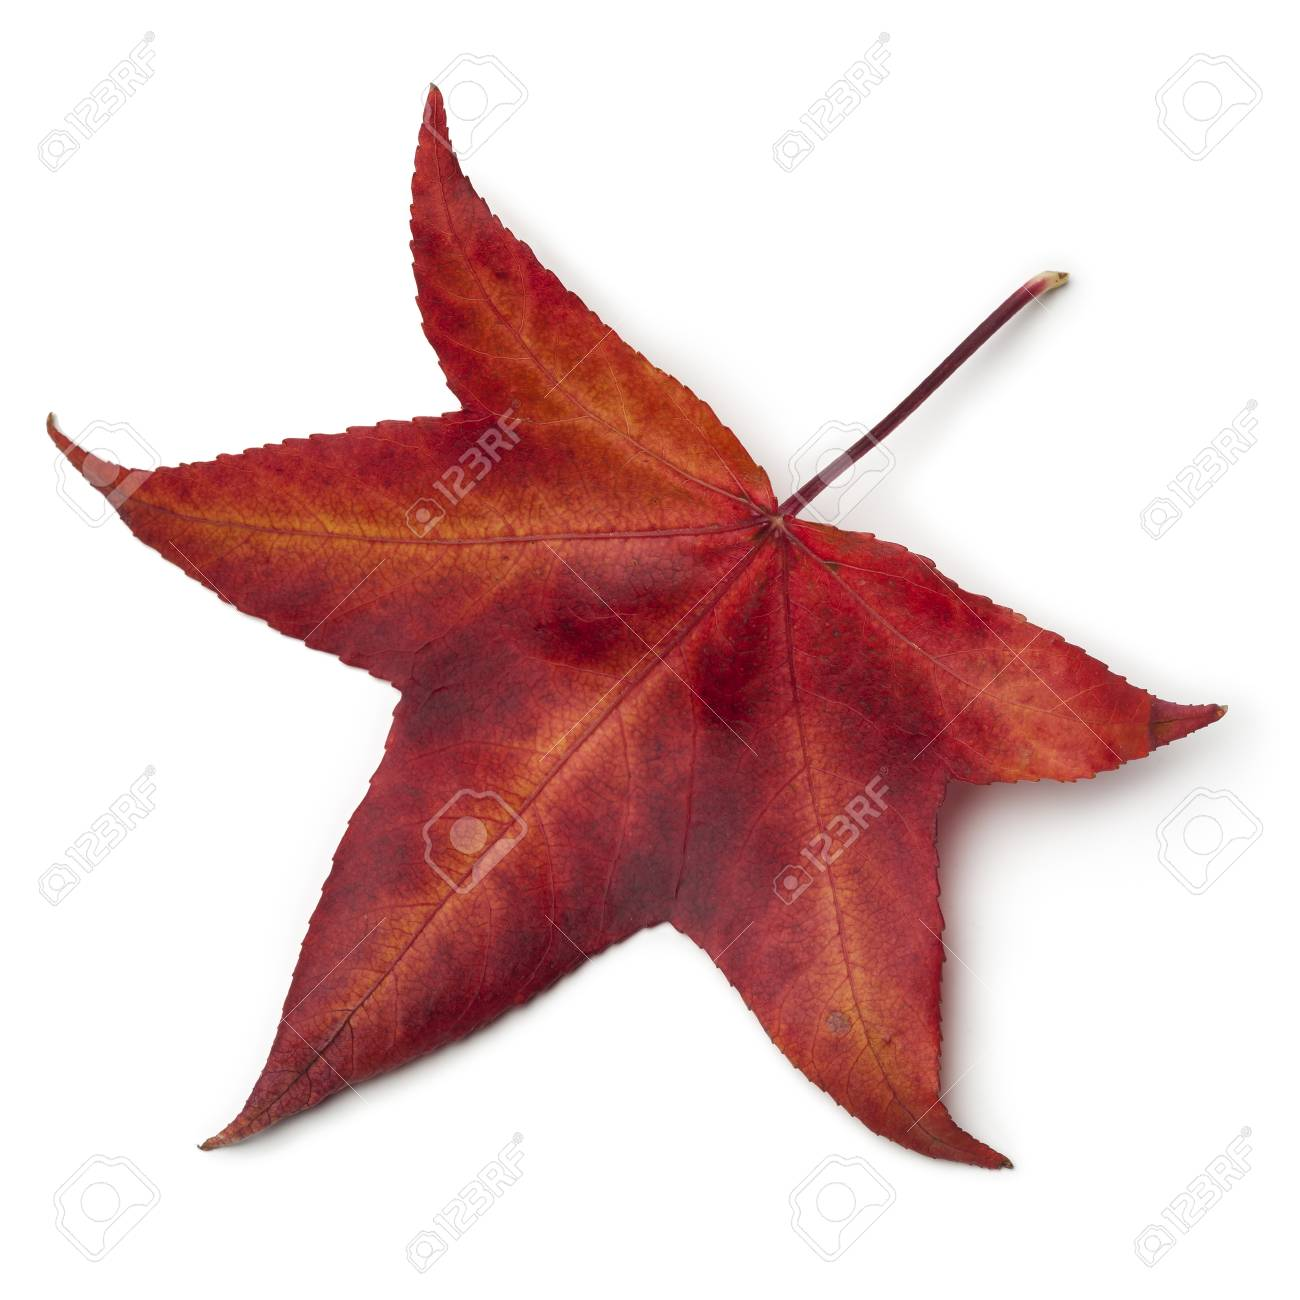 Red Autumn Leaf Of An American Sweetgum Tree On White Background Stock Photo Picture And Royalty Free Image Image 90182778